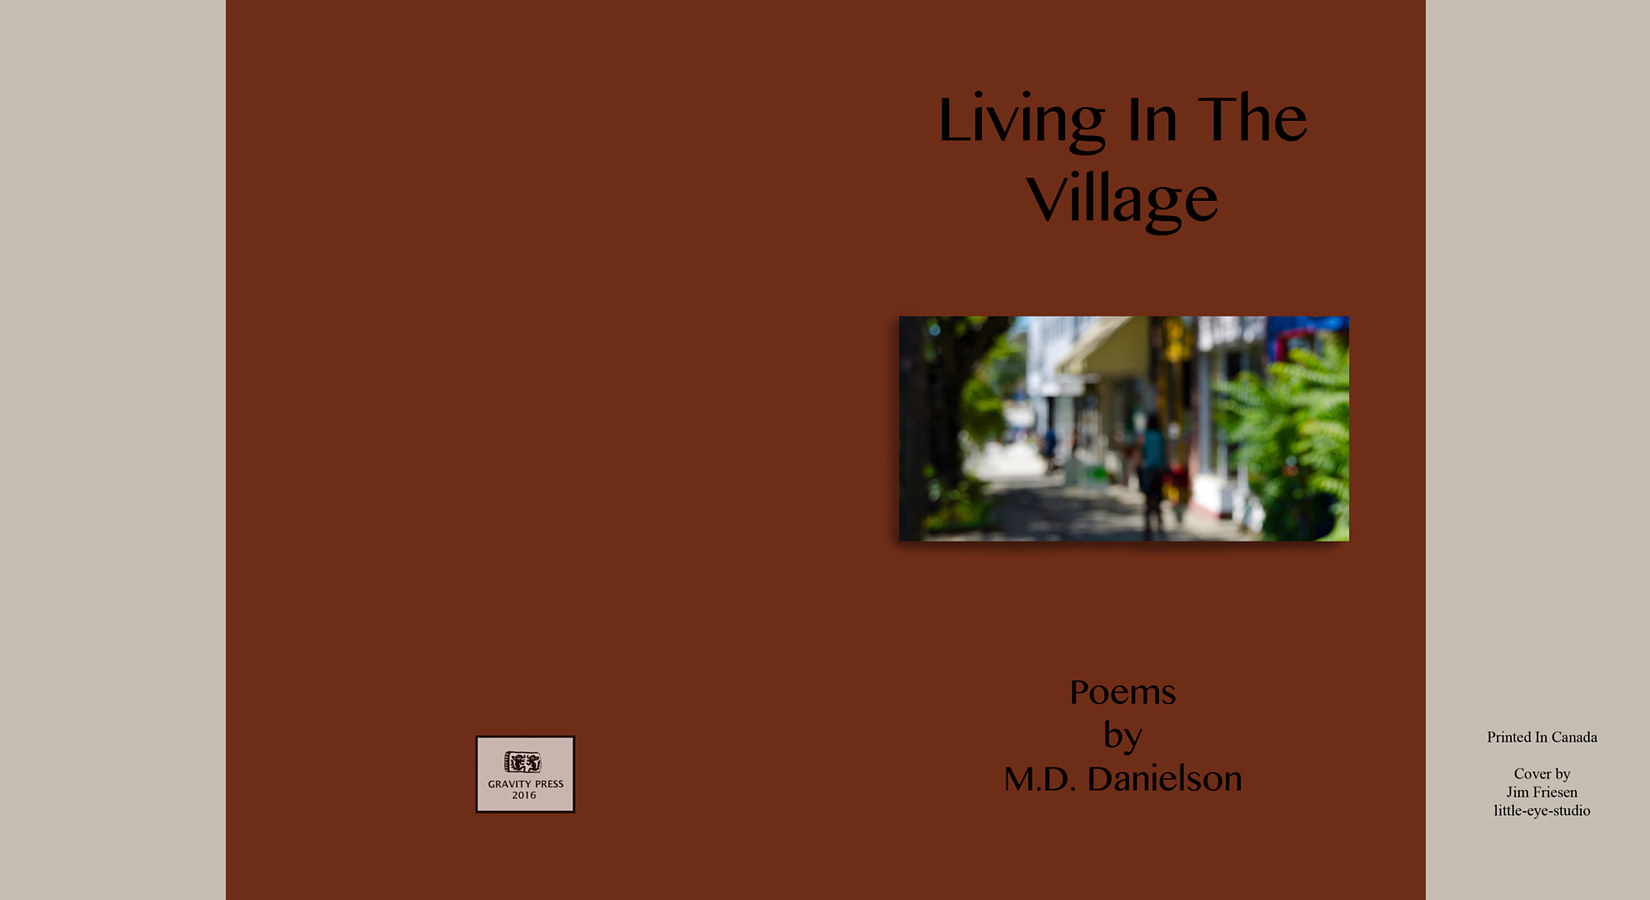 The Village Book Cover copy 4 by Jim Friesen